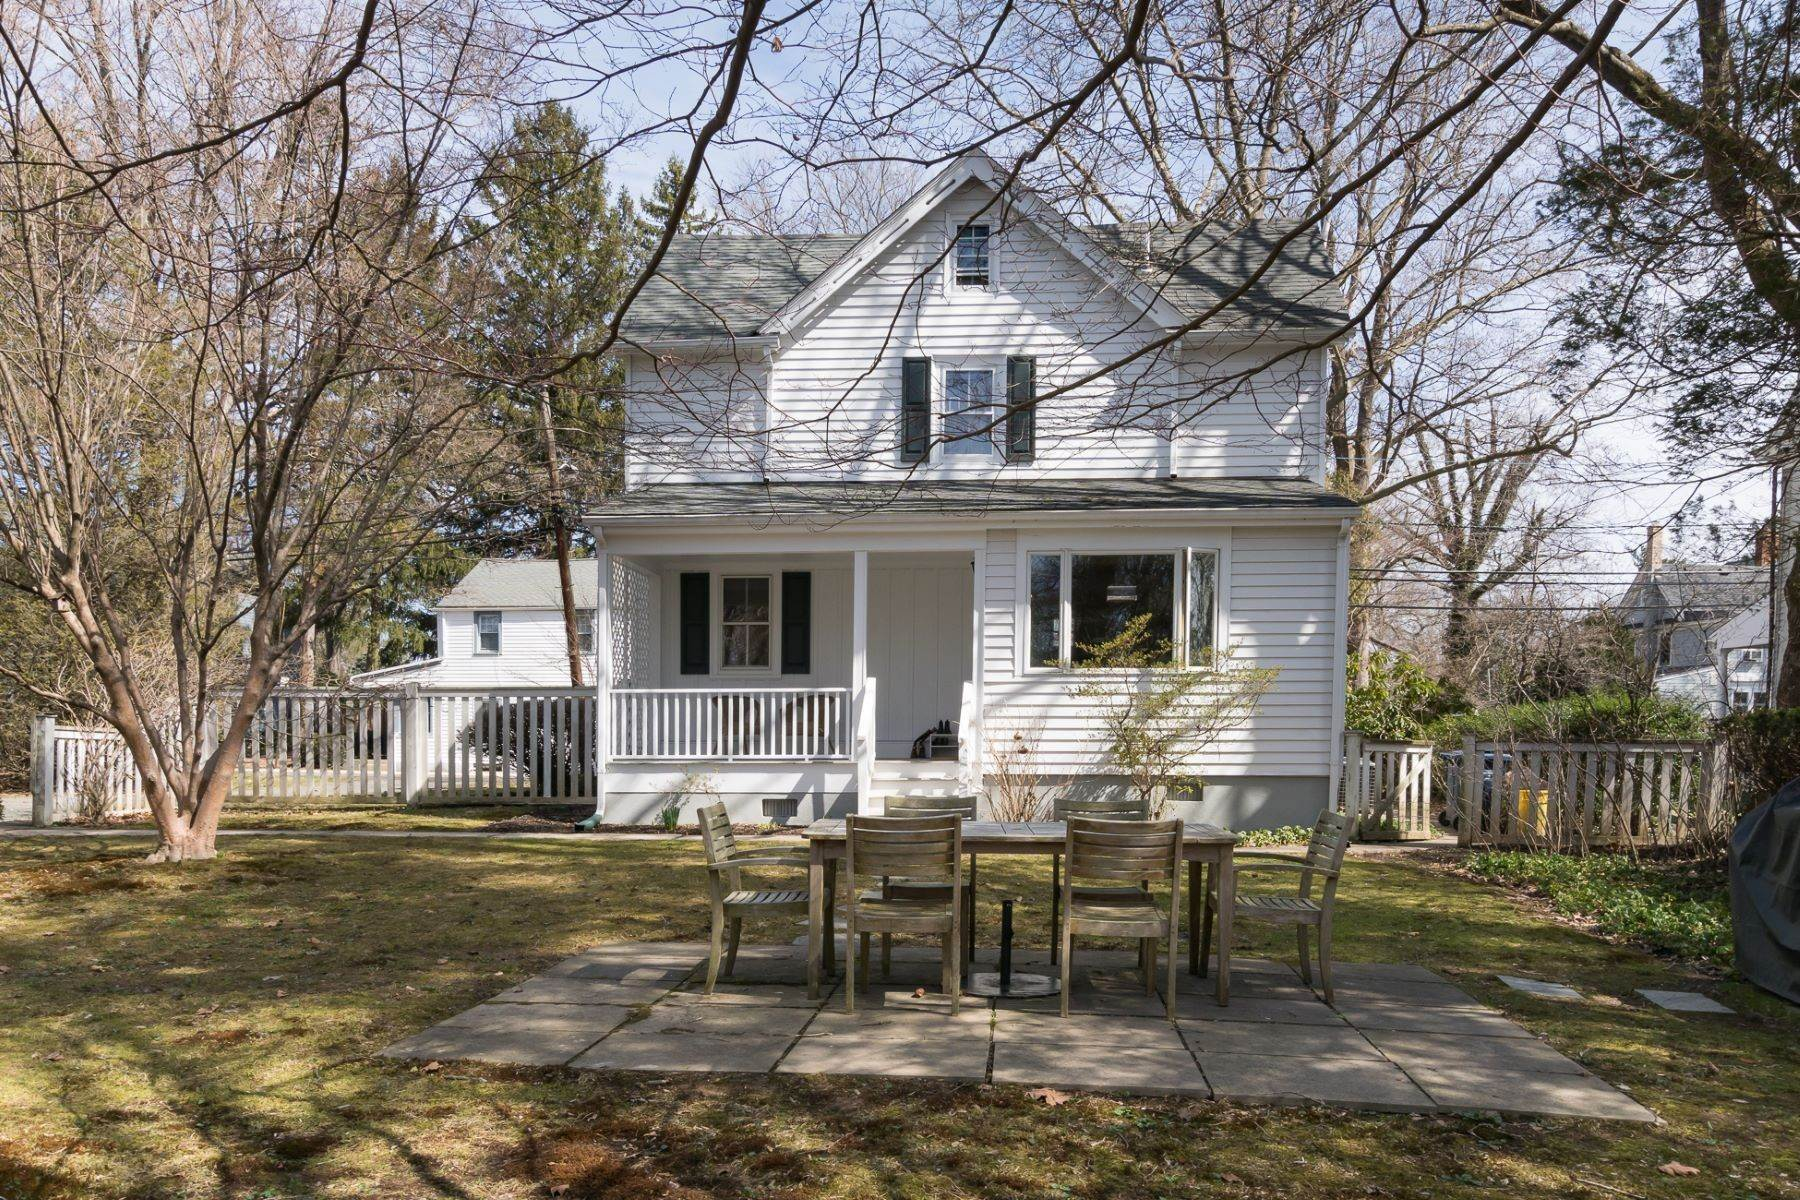 29. Single Family Homes for Sale at Storybook Home on a Stroll-Everywhere Street 5 Titus Avenue, Lawrenceville, New Jersey 08648 United States